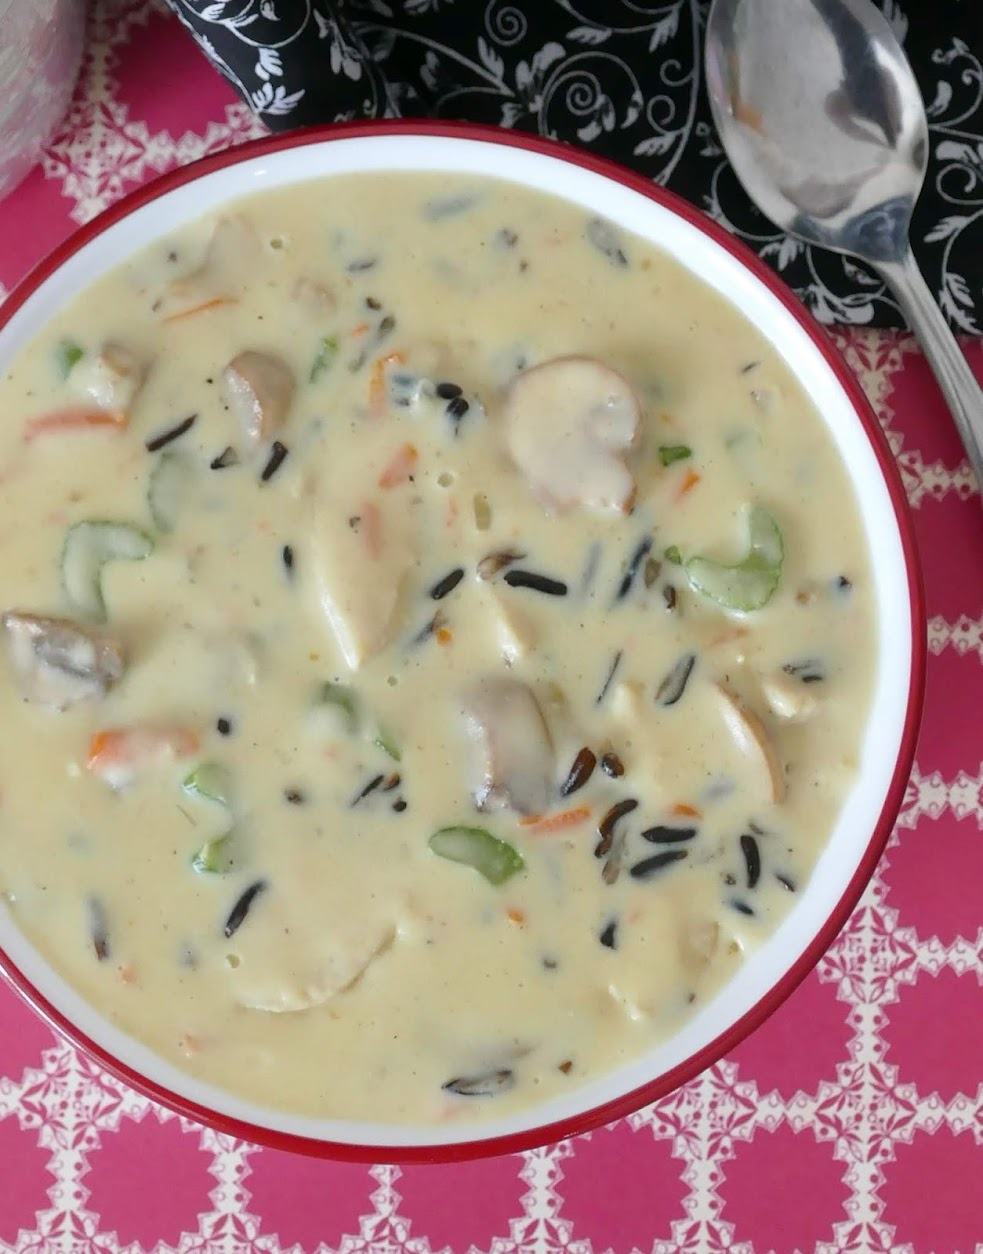 A Grand Casino Mille Lacs Minnesota Copycat recipe. Total winter comfort food! Perfect for any meal, and even better leftover! Packed with veggies like mushrooms, celery, carrots and onions!